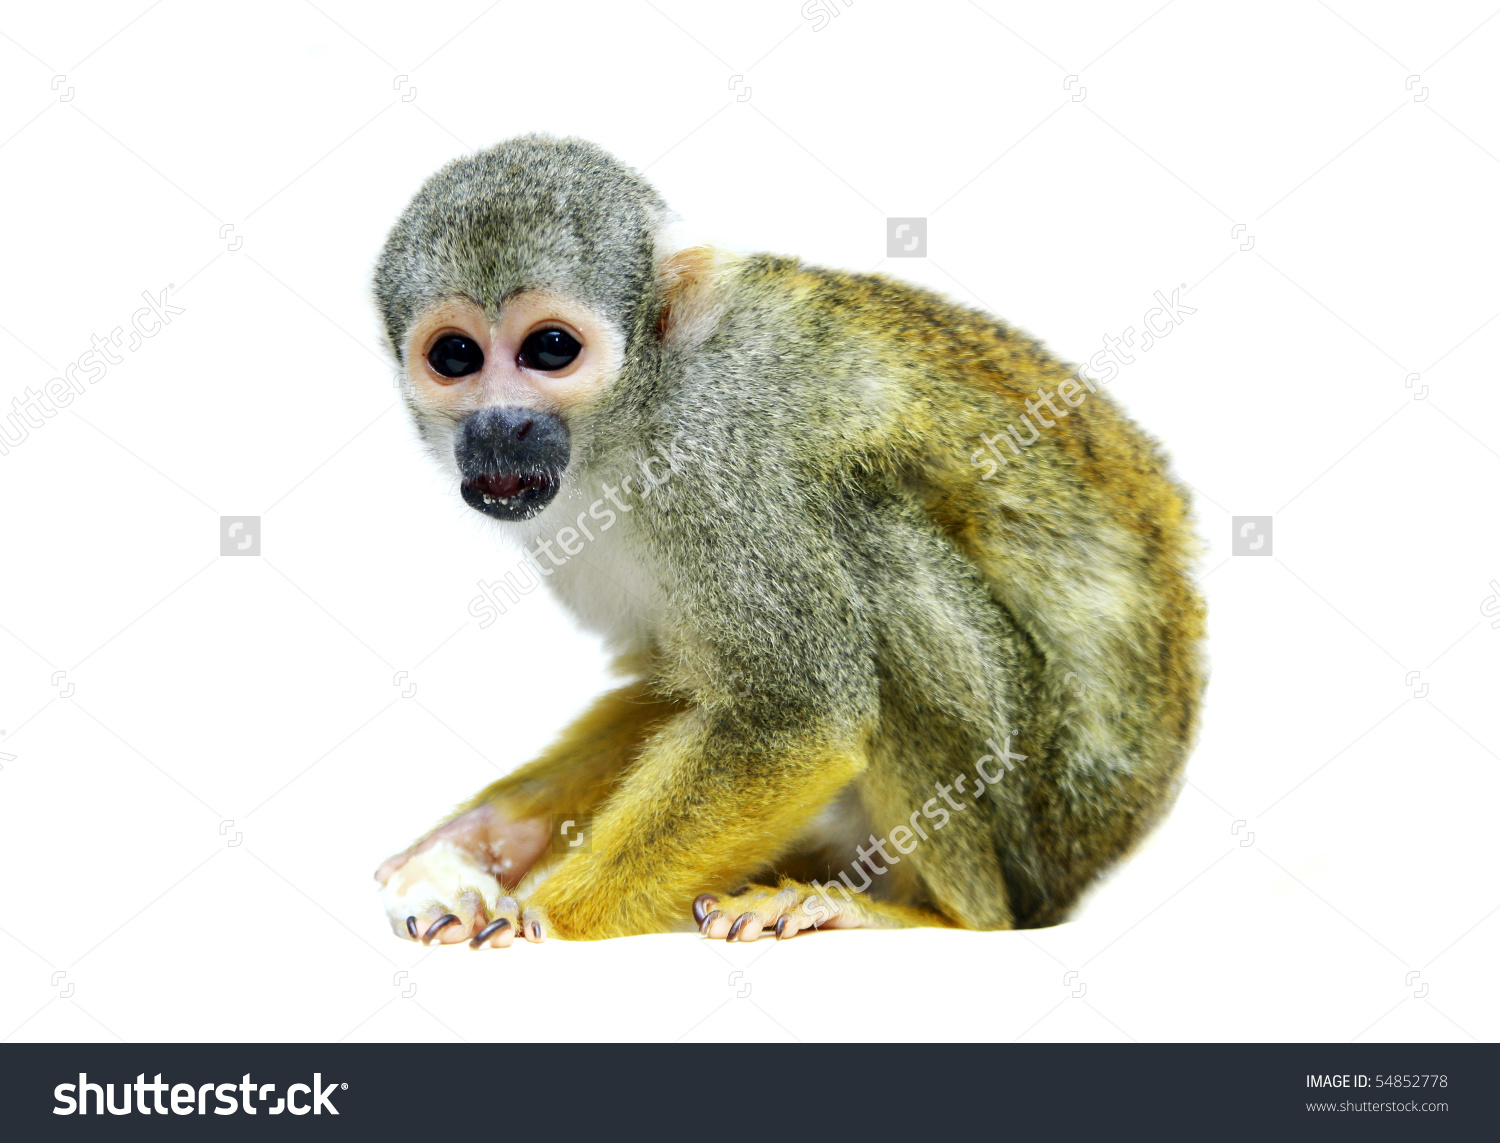 Squirrel Monkey clipart #3, Download drawings